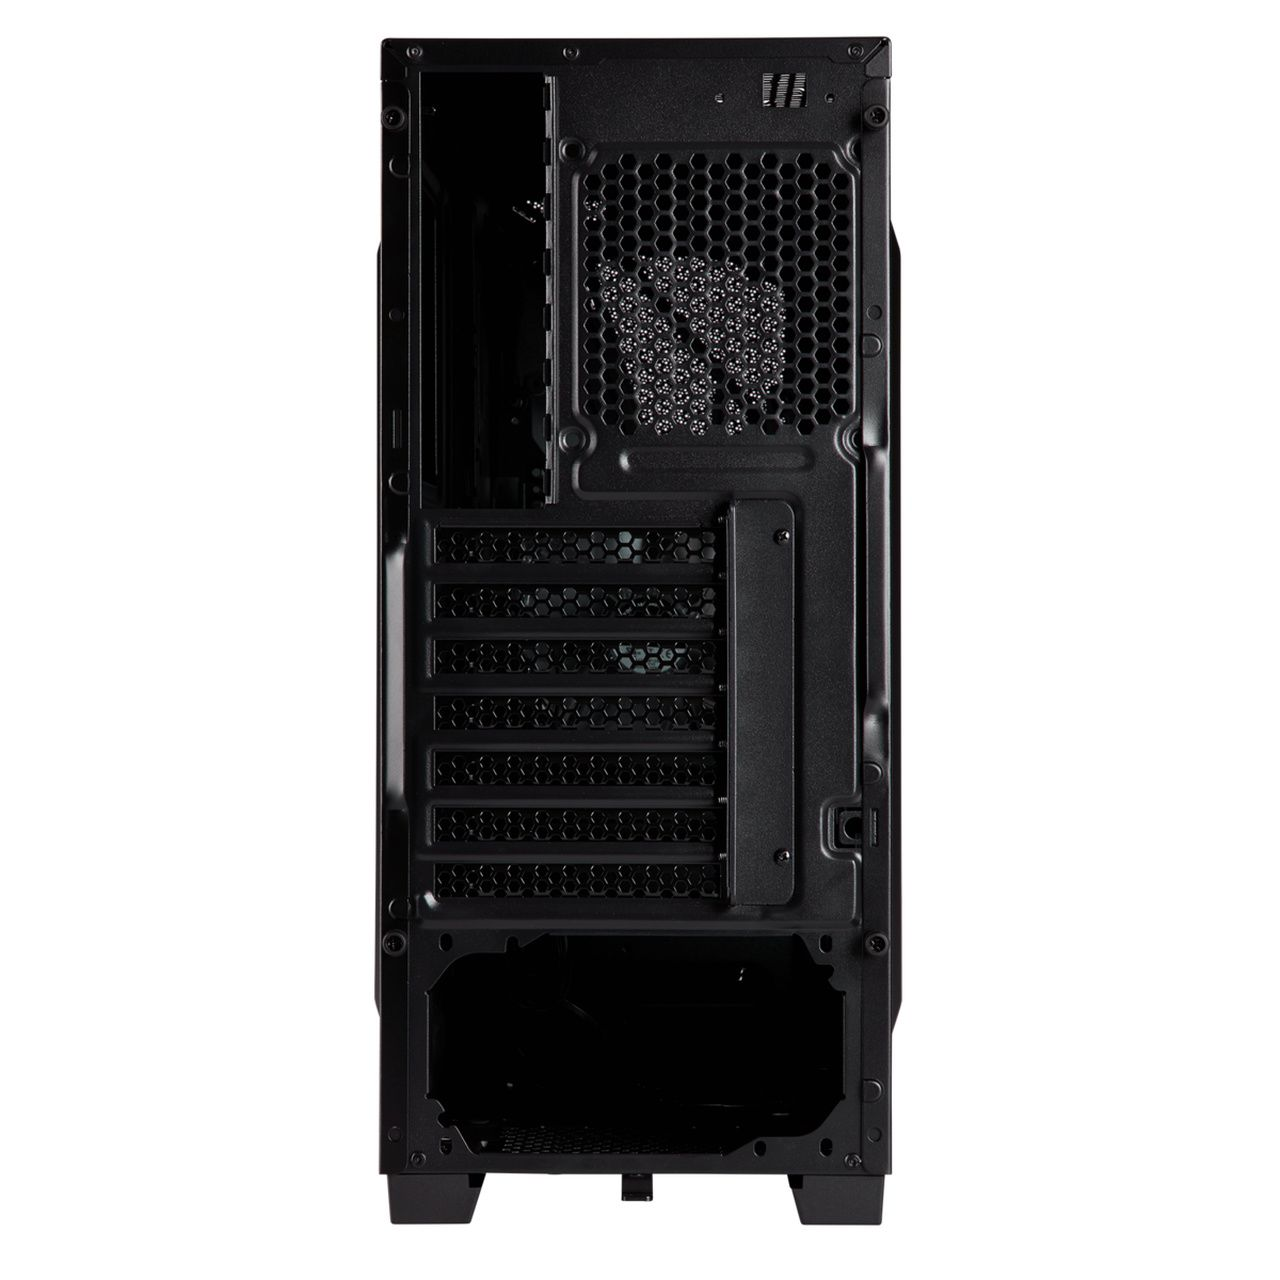 Gabinete Corsair SPEC-04 Carbide Series Preto/Cinza - CC-9011109-WW